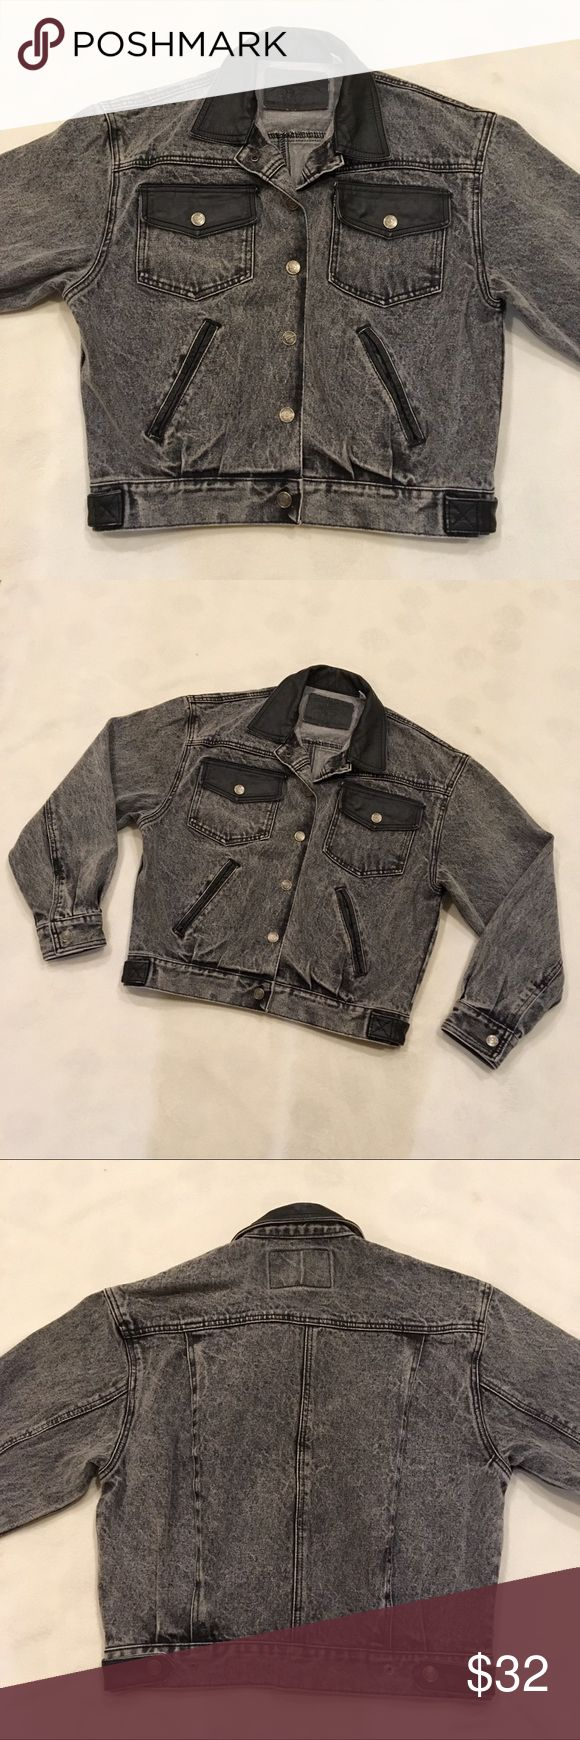 """Vintage acid wash jean jacket Rad 80s true vintage black/gray acid wash jean jacket with leather details on pockets and collar. Tag says (men's?) medium, I'd say it fits a modern women's medium with a boxy oversized fit, or a small if you want it even bigger. Measurements: shoulders 19.5"""", chest 21"""", waist 17"""", shoulder to hem 21.5"""", shoulder to cuff 21"""". Great vintage condition! Vintage Jackets & Coats Jean Jackets"""